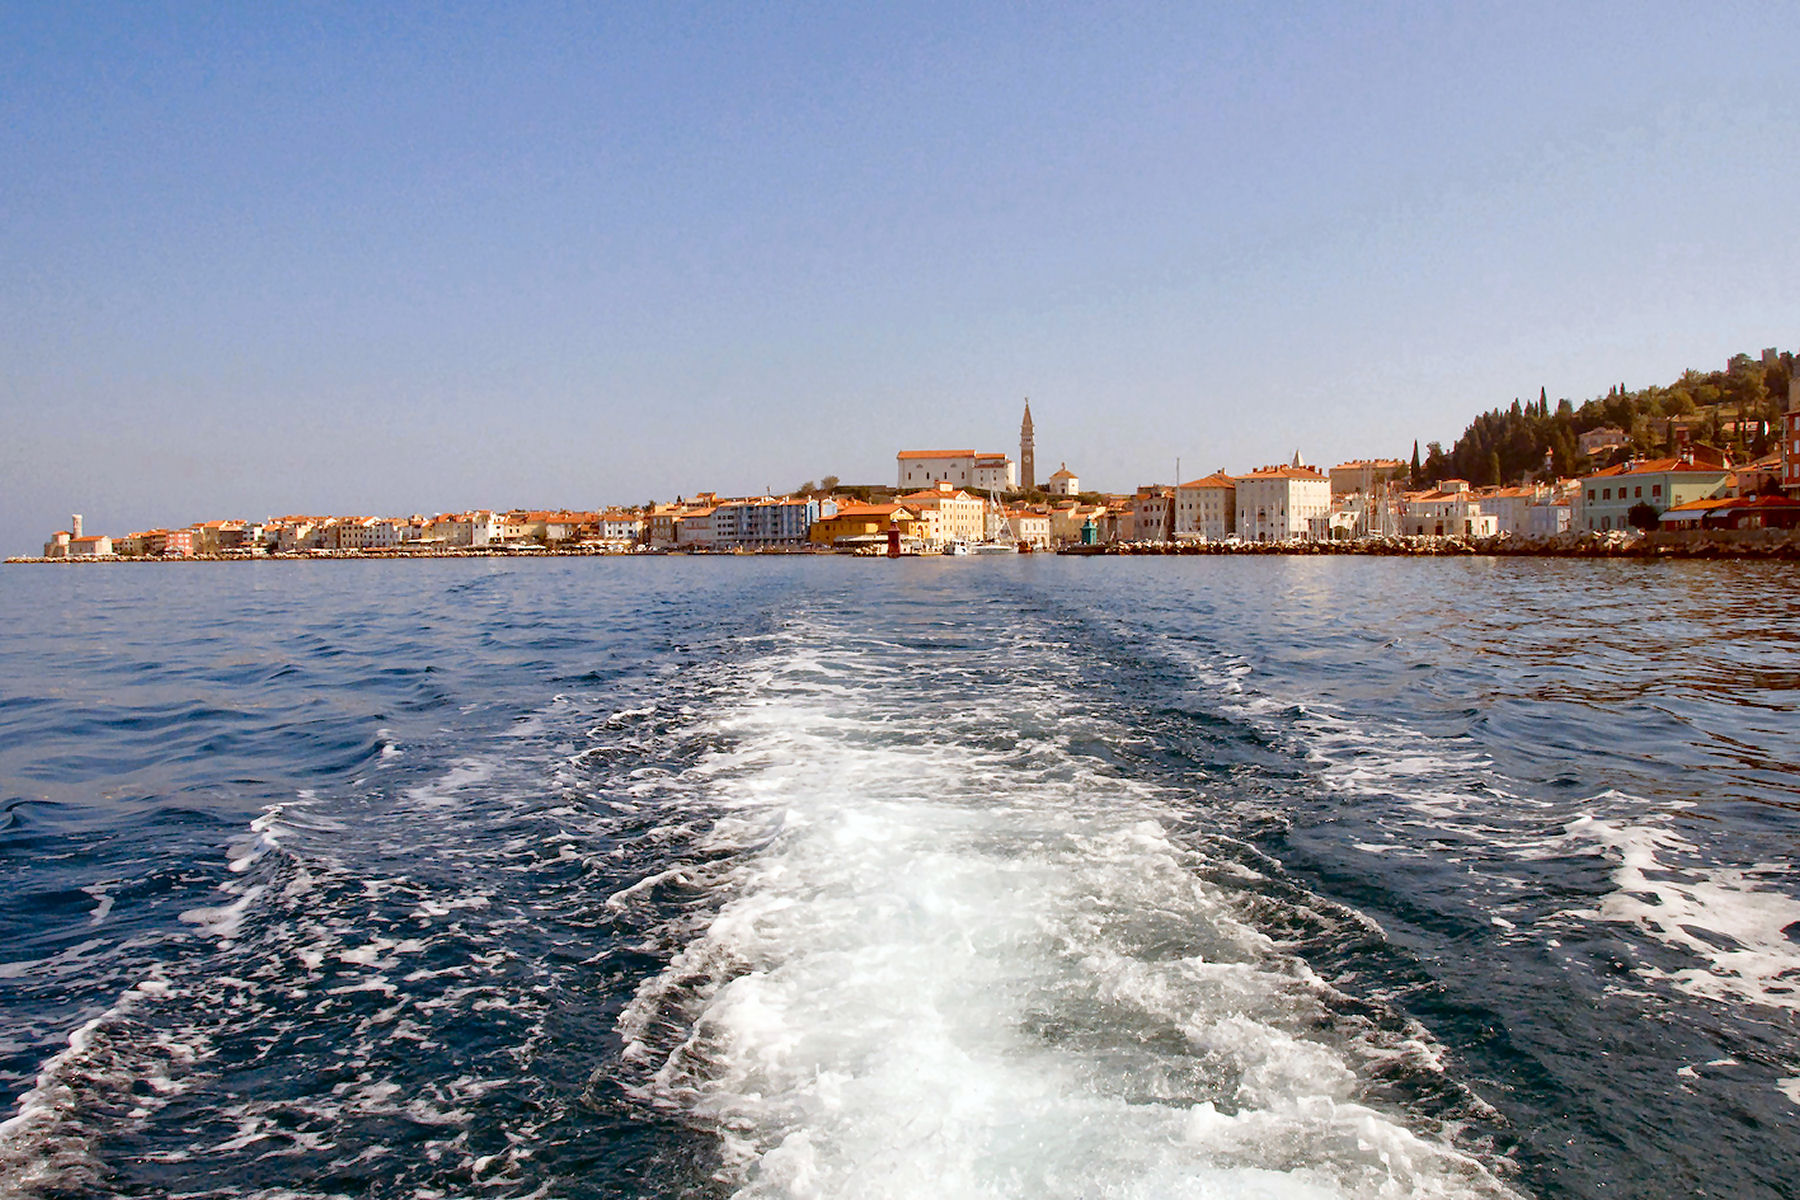 Piran Slovenia, view from the sea